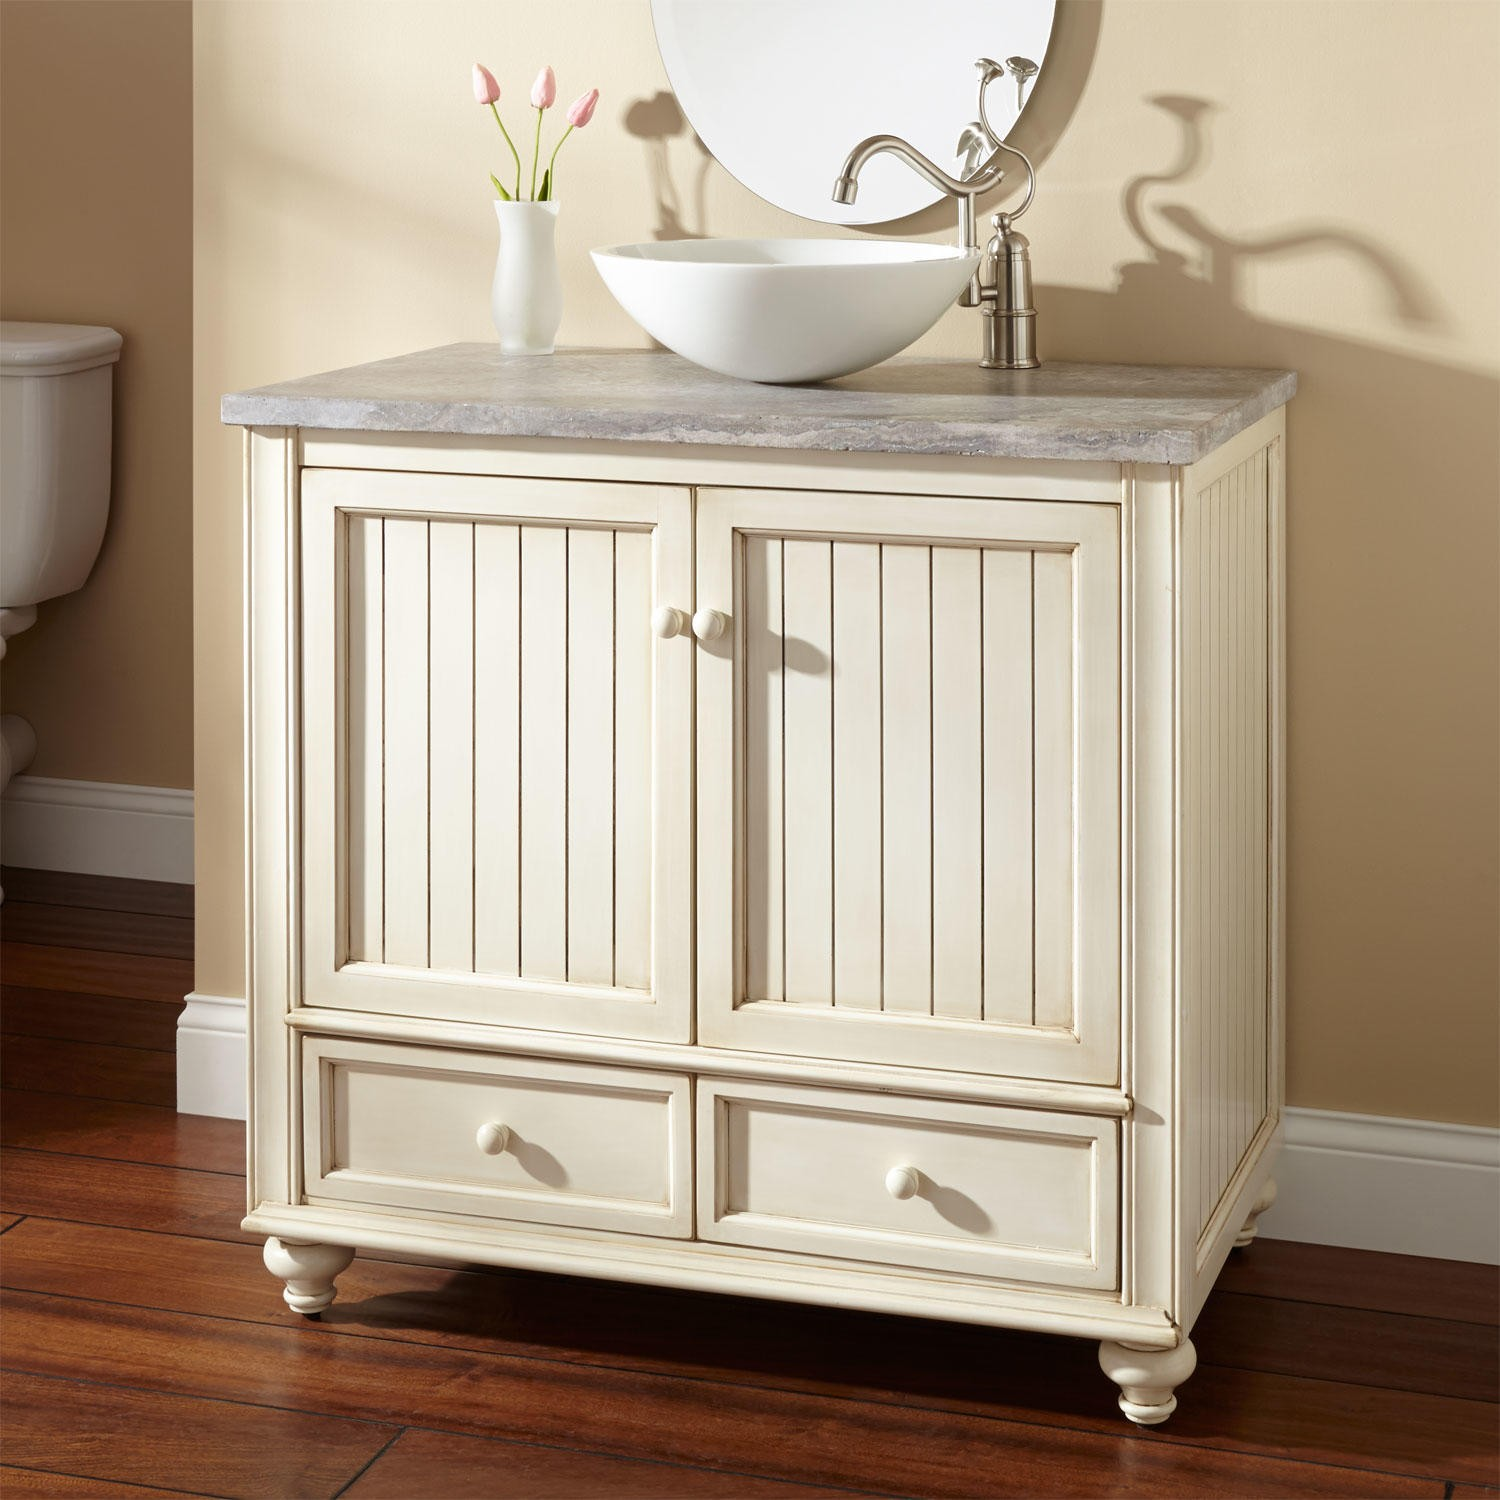 Sophisticated mirabelle sinks with Vessel Sink for bathroom with mirabelle undermount sink